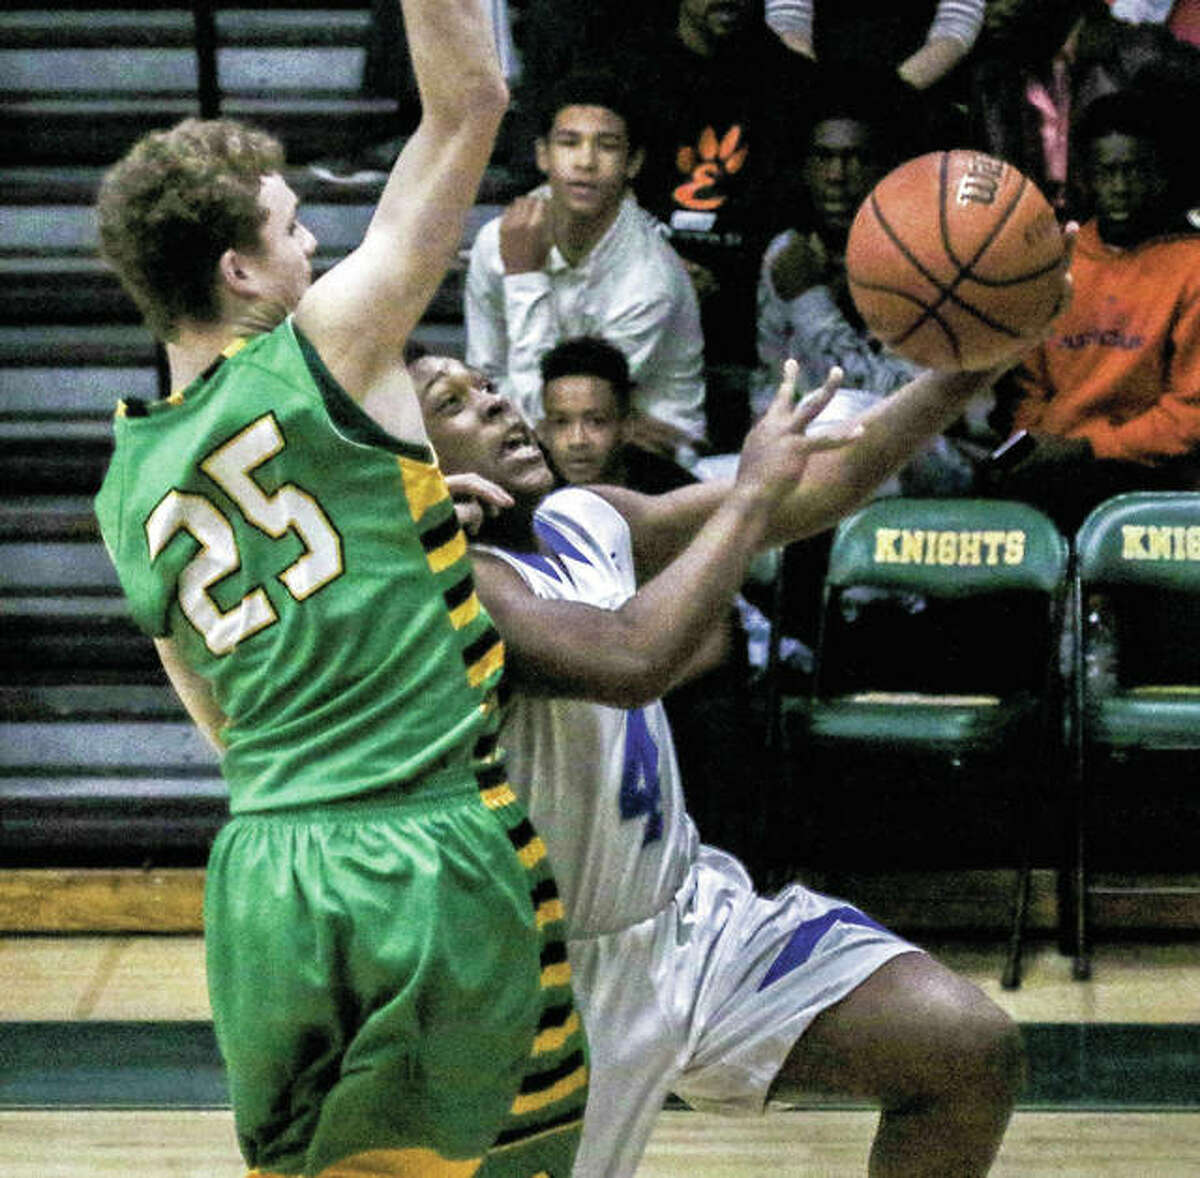 Marquette's Iggy McGee (right) drives to the hoop for a shot contested by Southwestern's Kyler Seyfried in MEL Tourney play Friday night in Edwardsville.